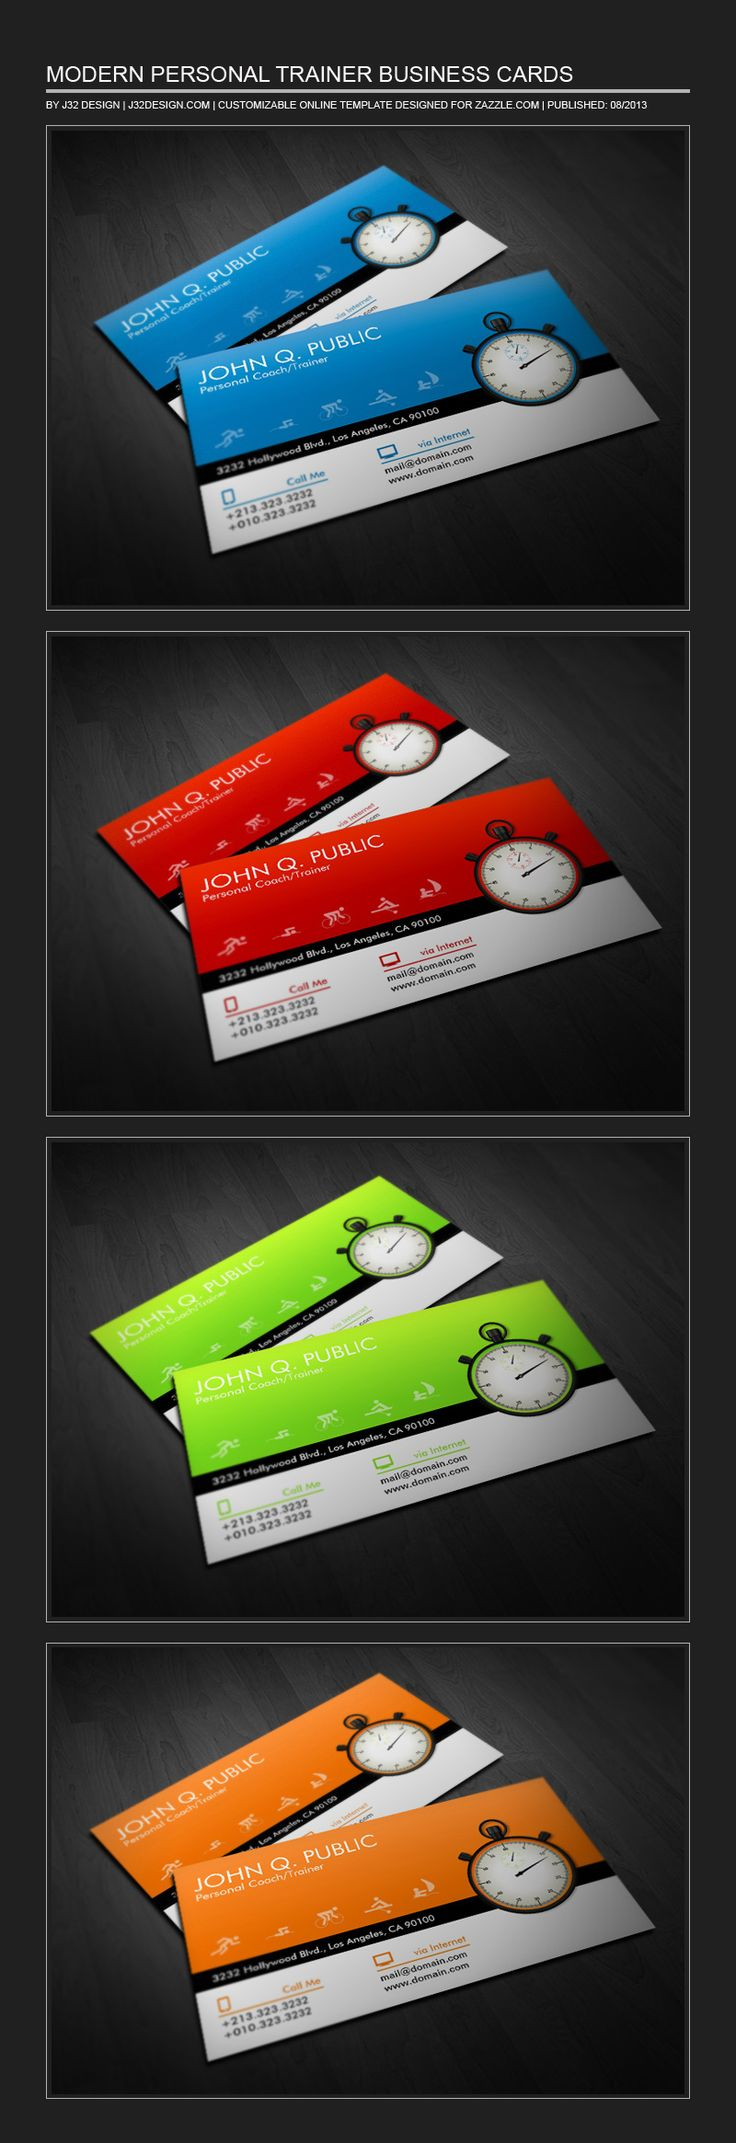 3023 best nice business cards on pinterest images on pinterest modern business cards for personal trainers and coaches colorful design showing sports icons and a stopwatch custom business card design ready for you to reheart Choice Image